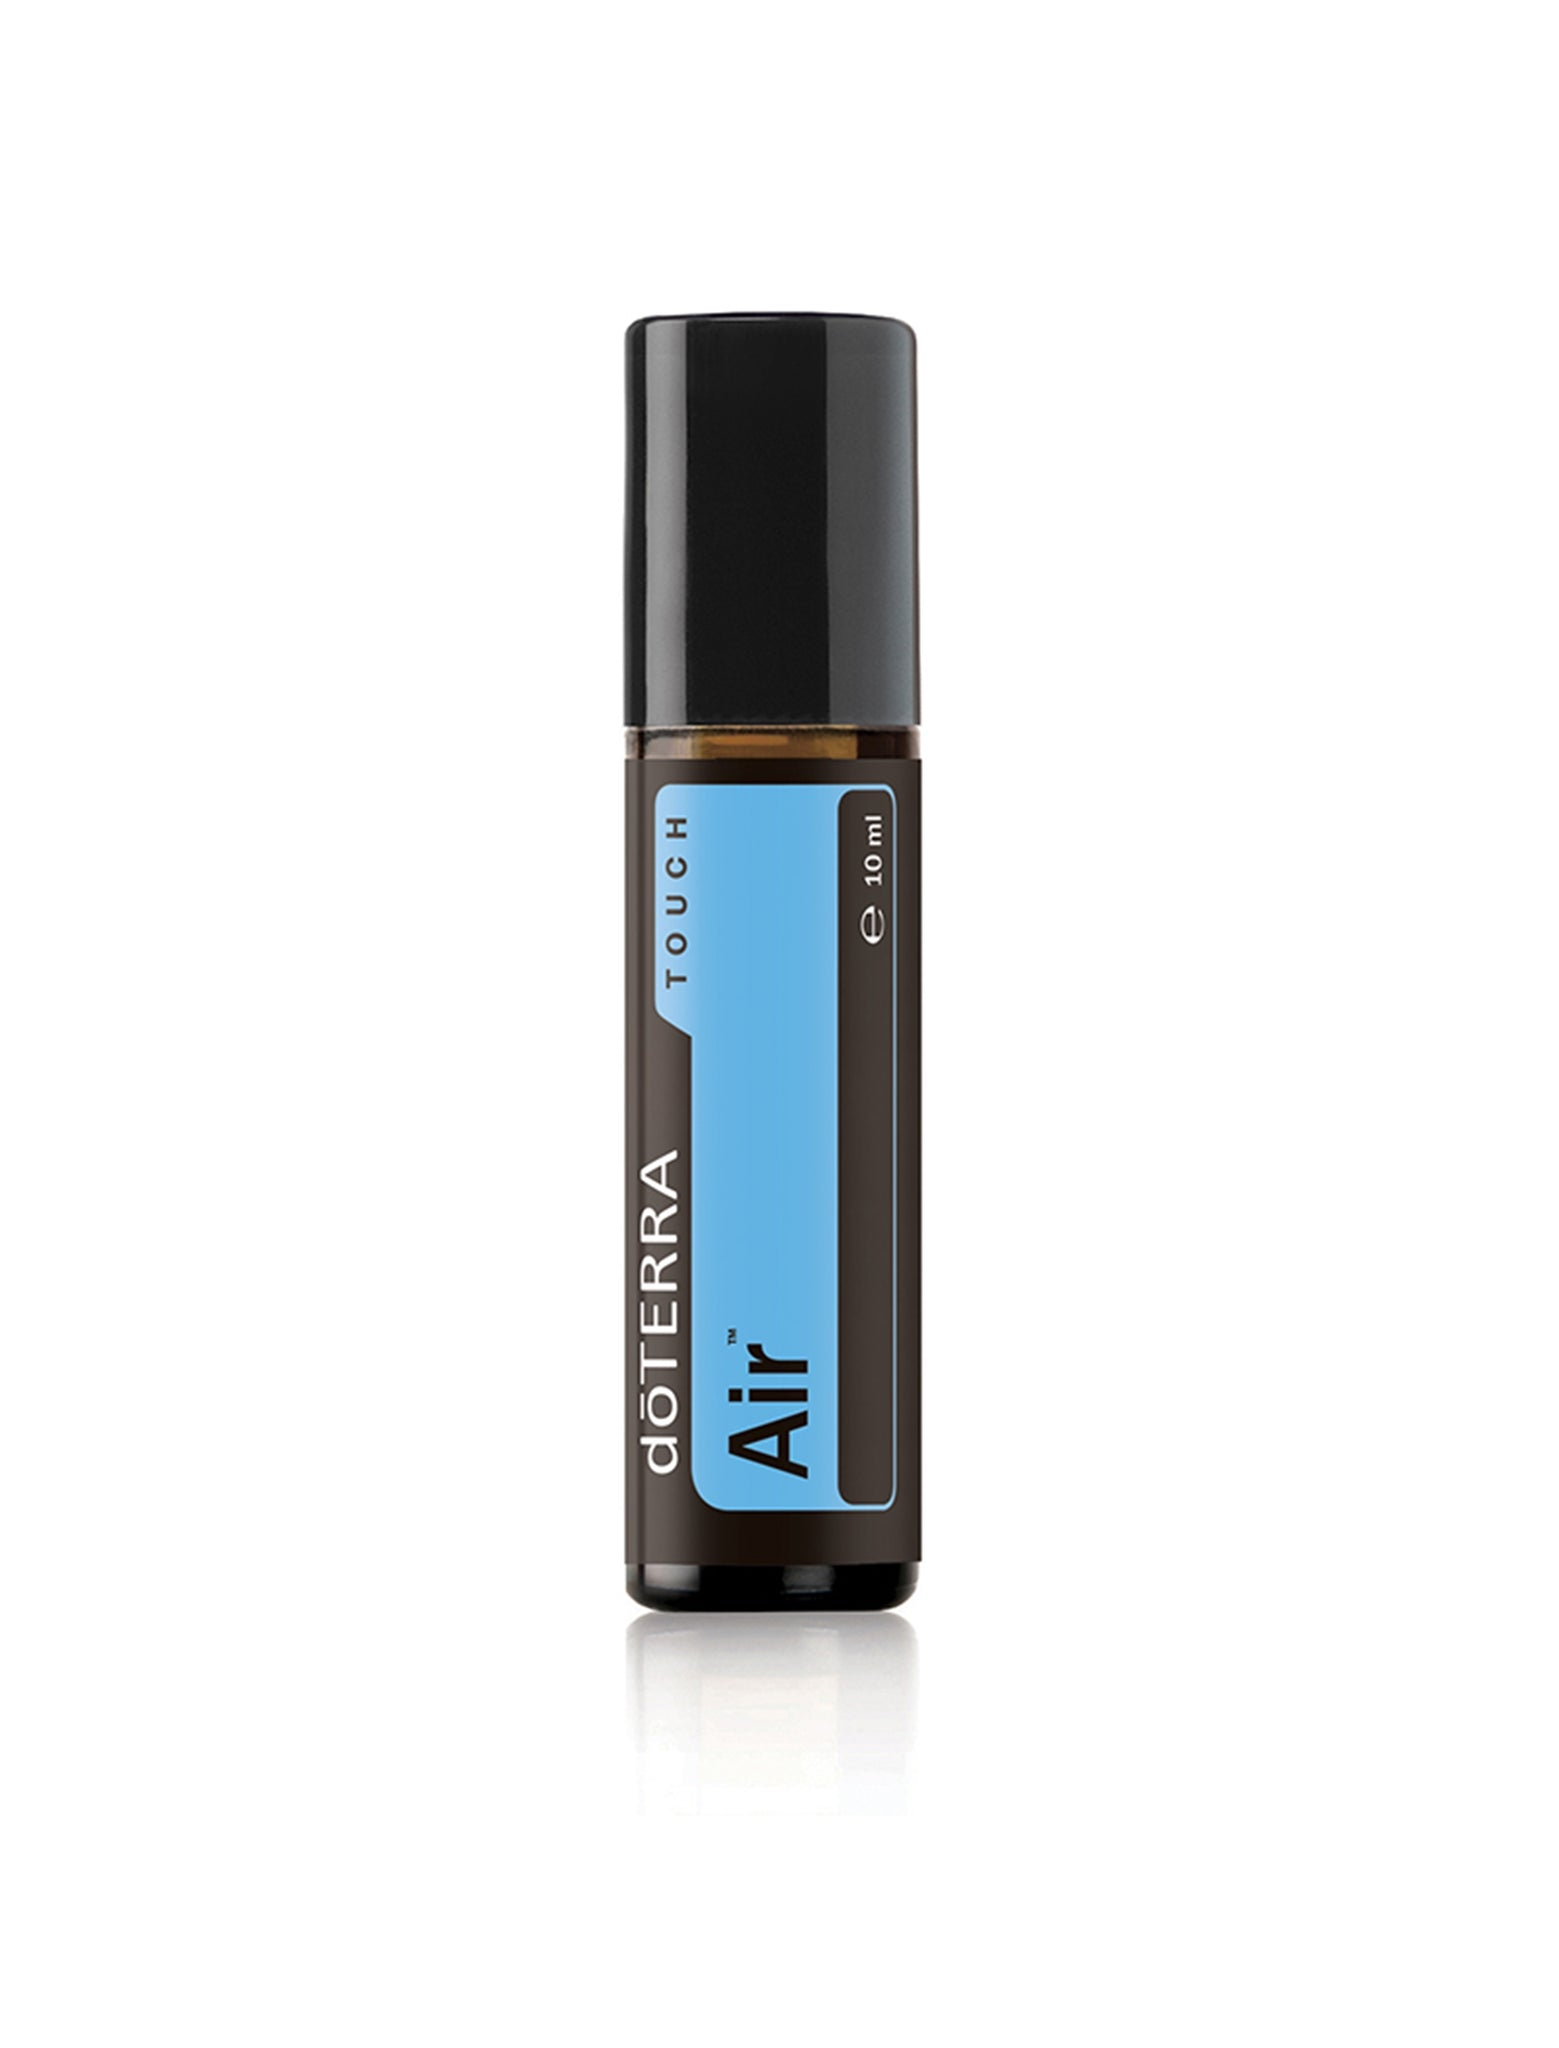 Compre Breathe (Air) Roll-on | 10ml online na EVOdōTERRA